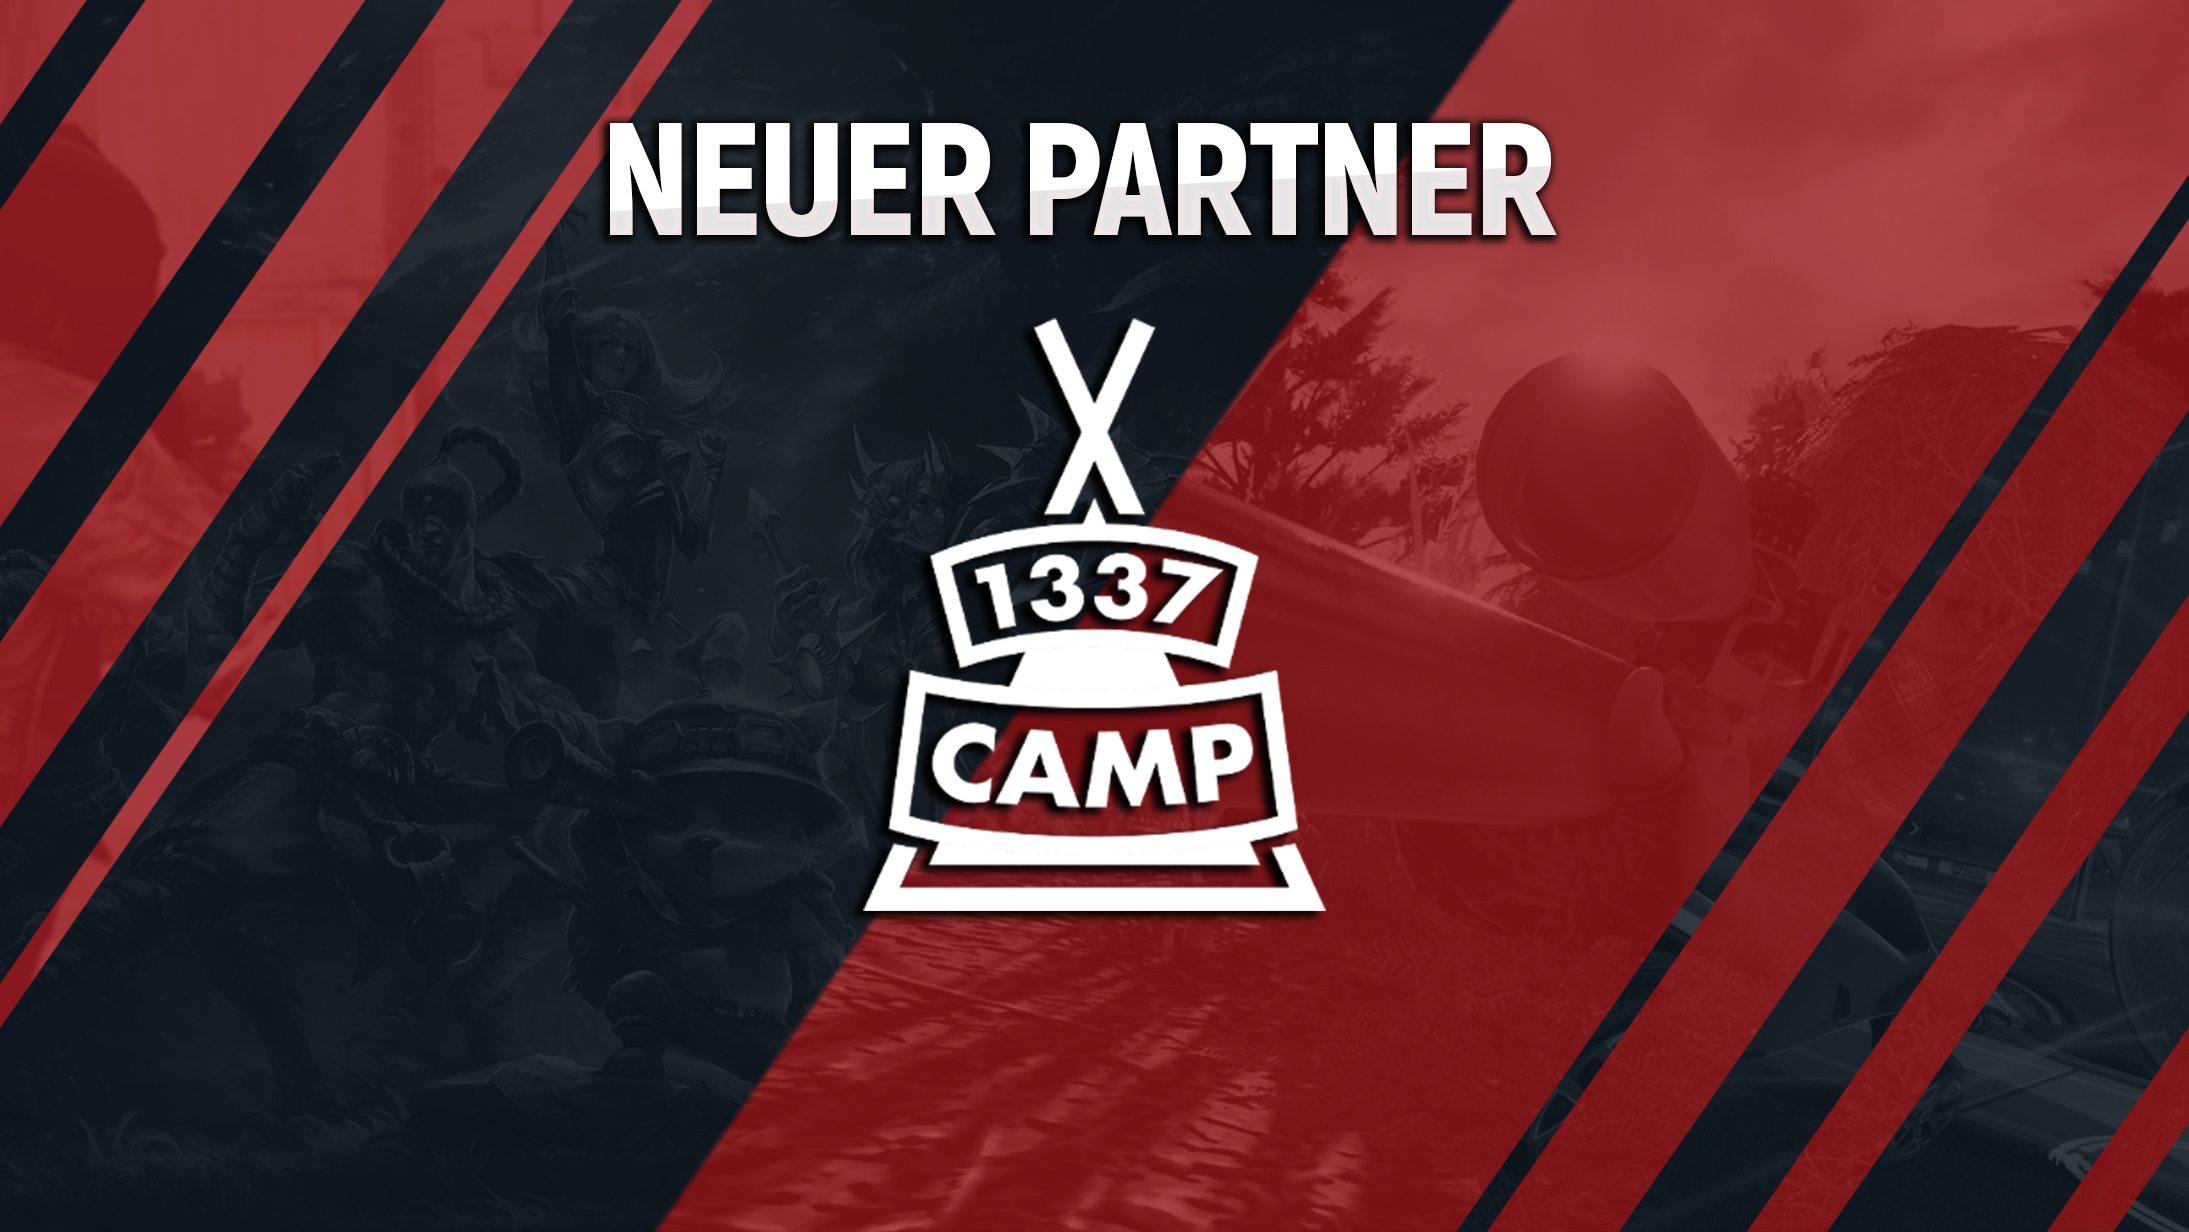 neuer-partner-1337-camp